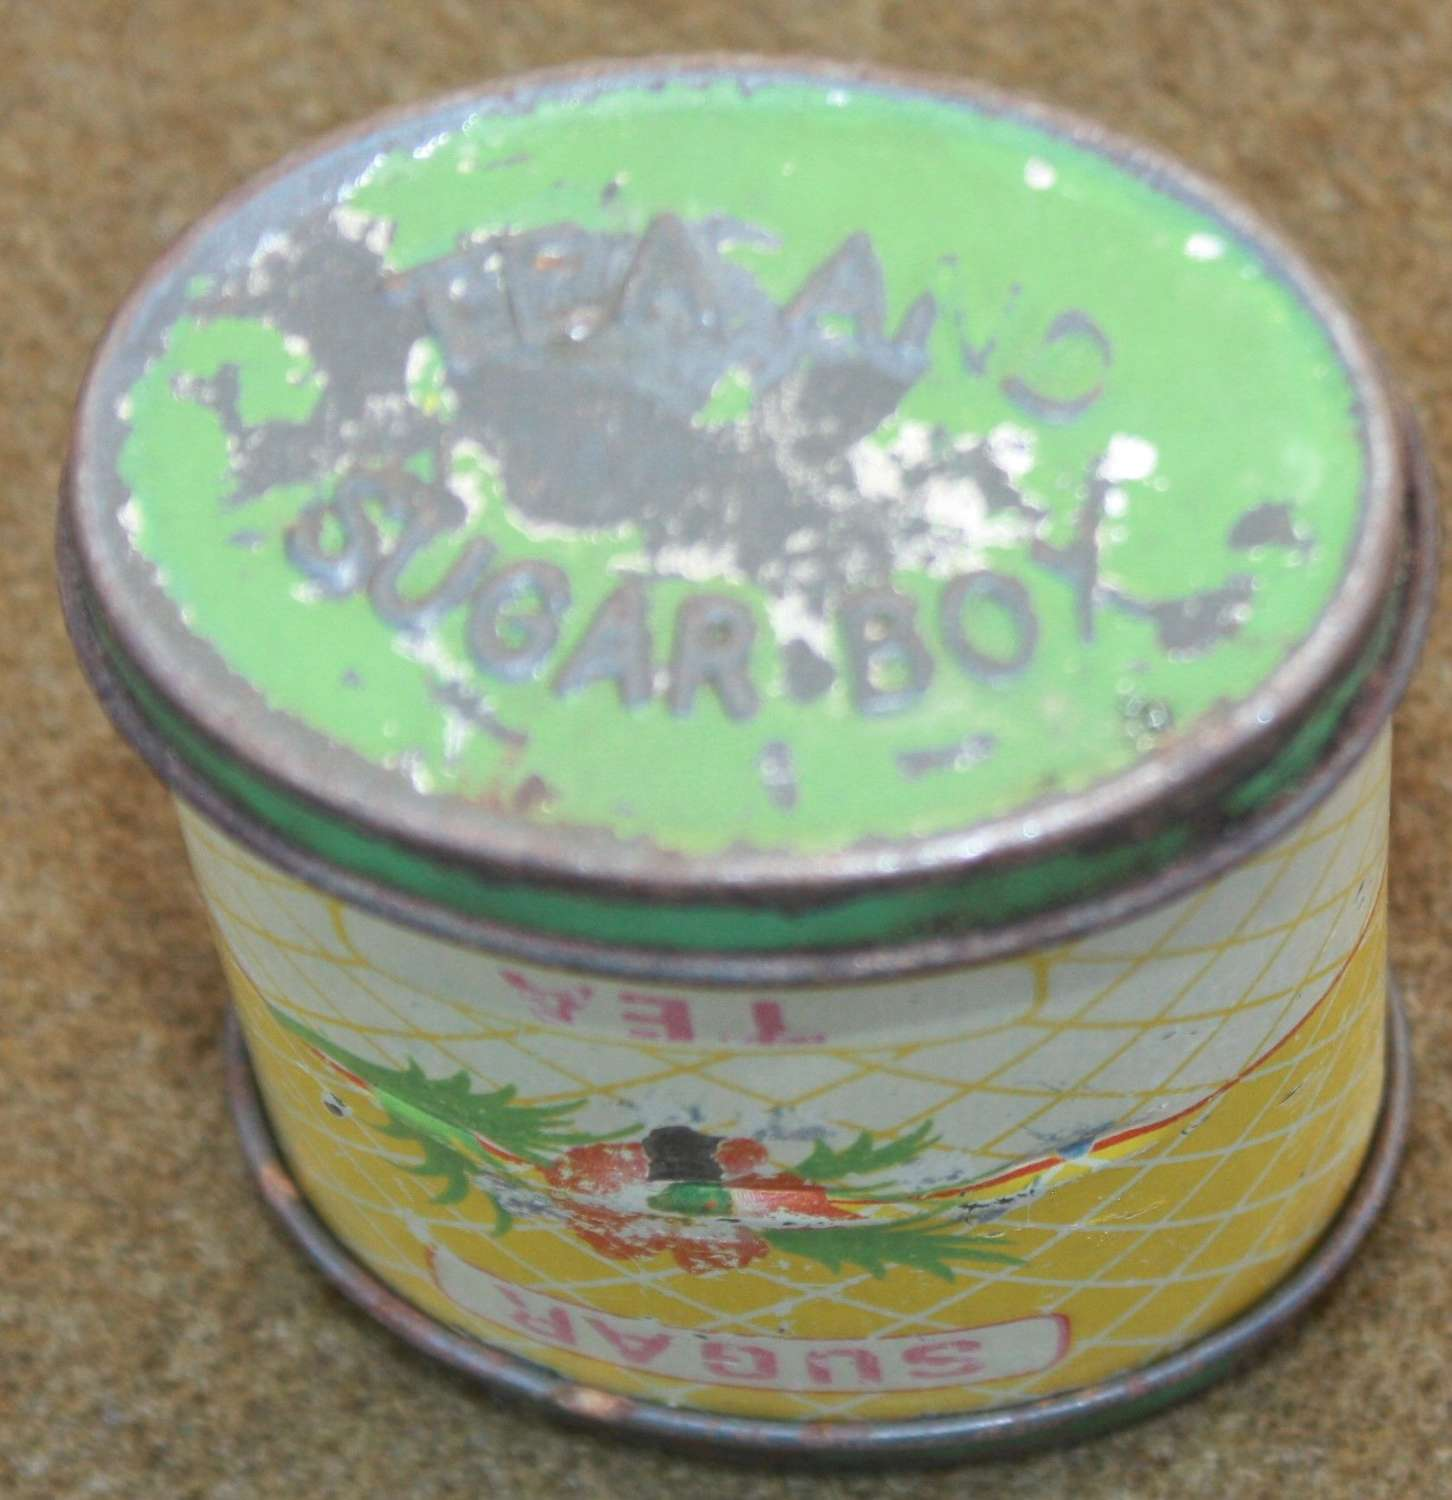 A WWII PERIOD TEA AND SUGAR RATION TIN